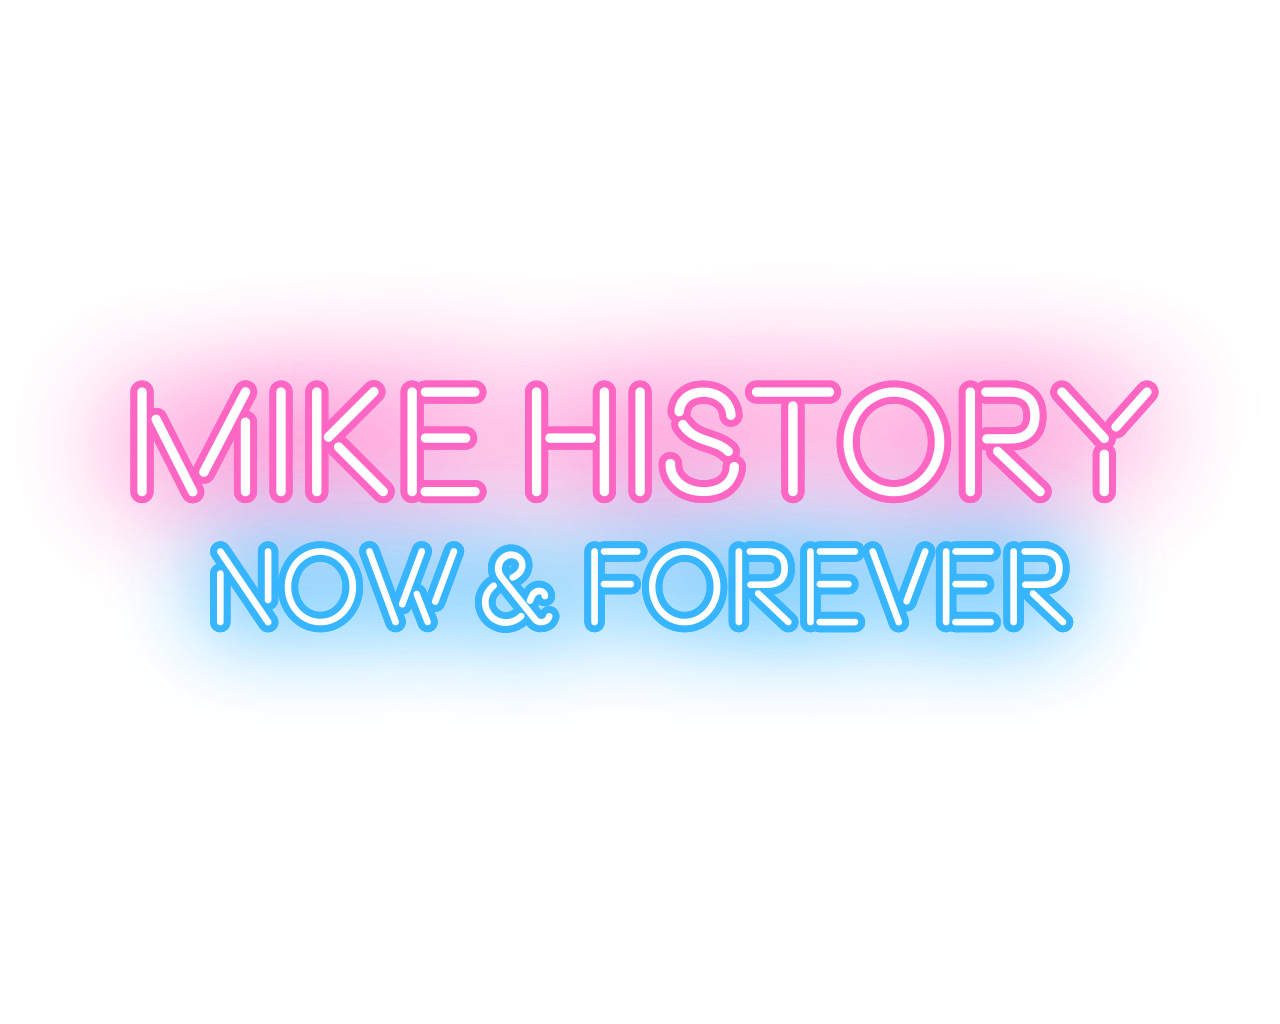 Mike History